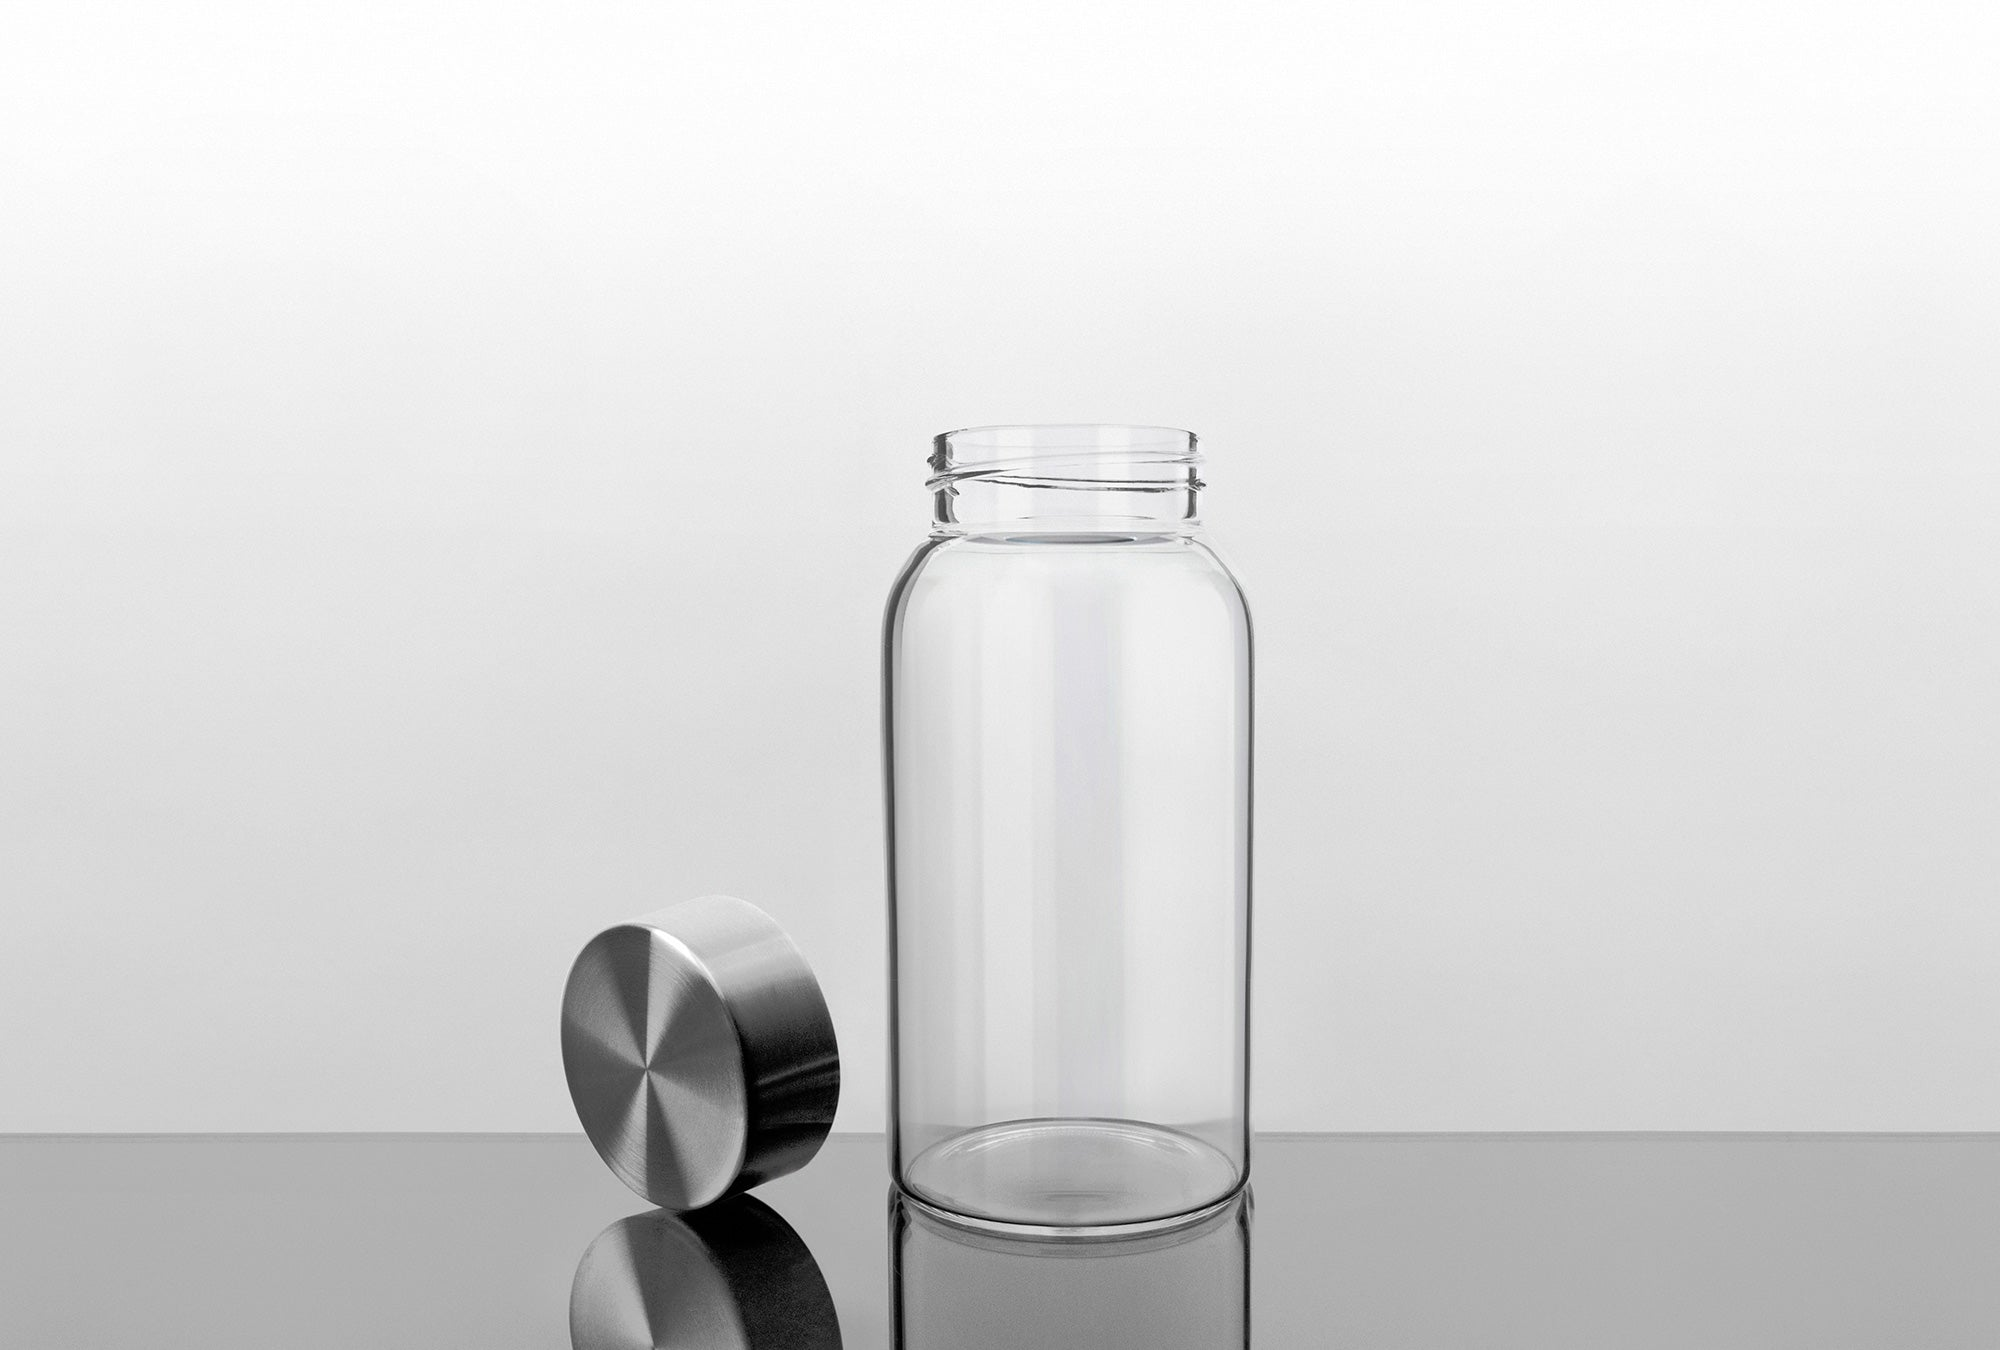 21 Oz Glass Water Bottle With Stainless Steel Cap 2nd Generation Kablo